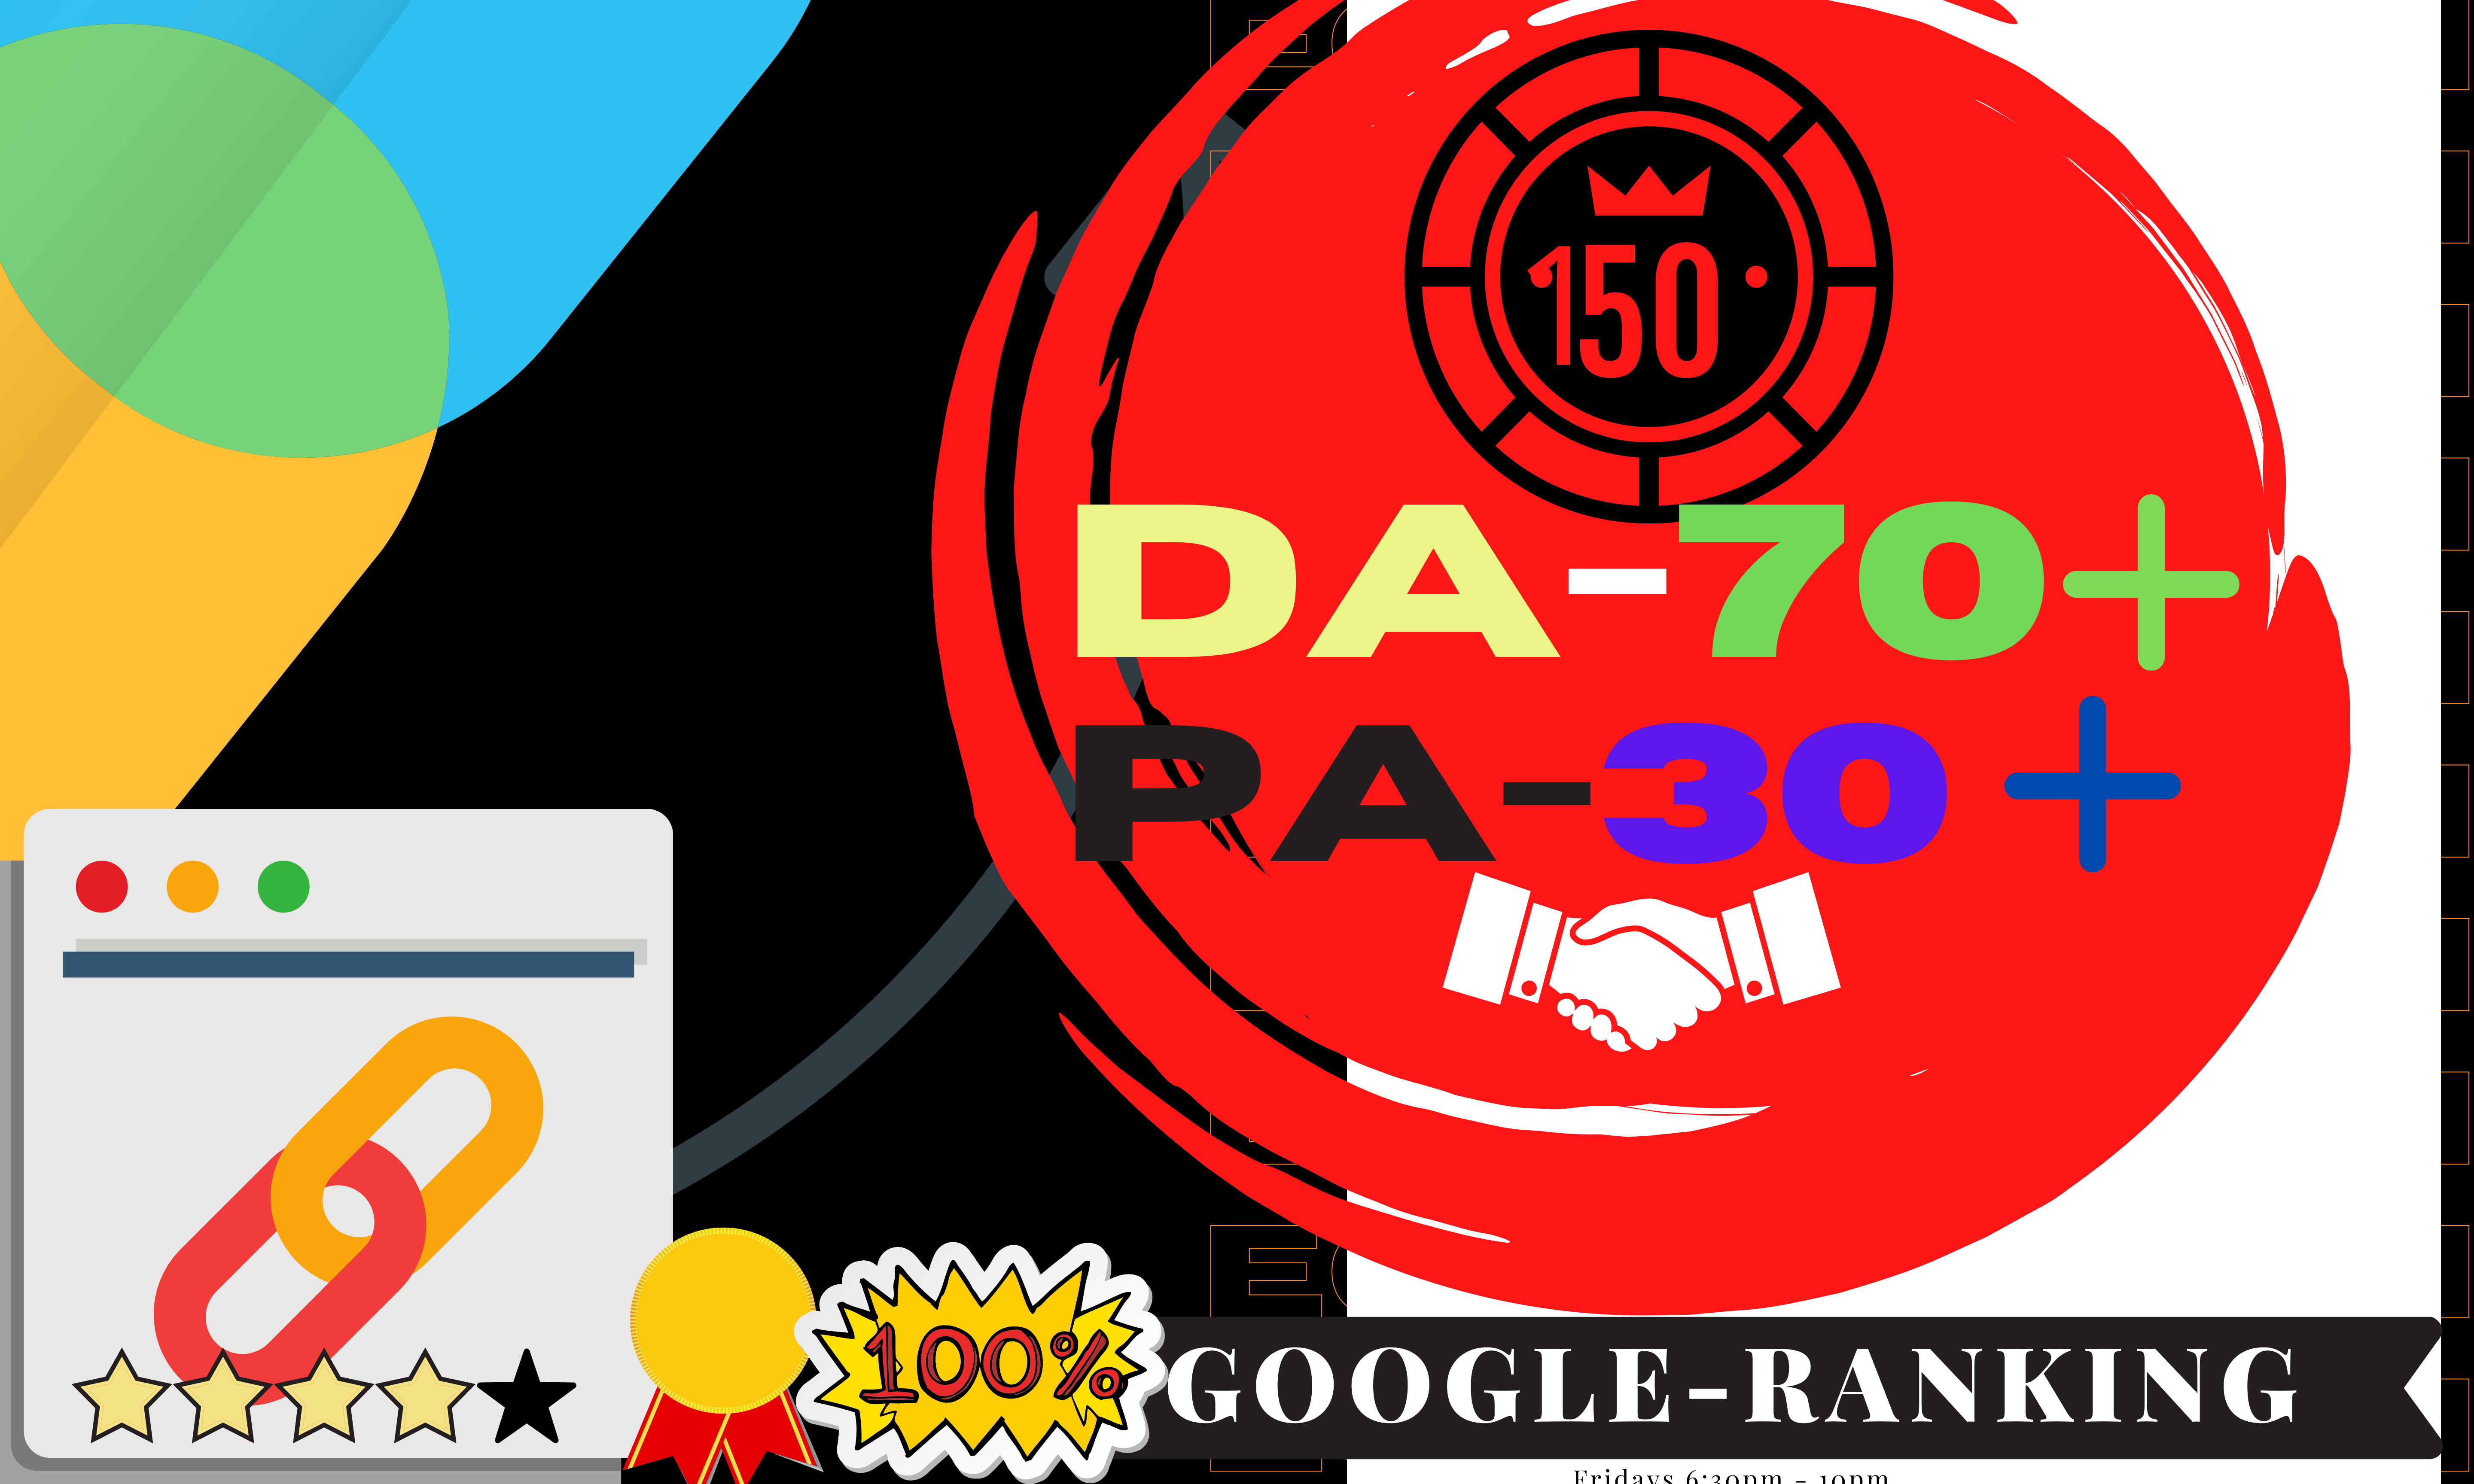 I Will Create 150 High-Quality Out-Reach Backlinks,  Domain Authority DA70+ & Page Authority PA30+